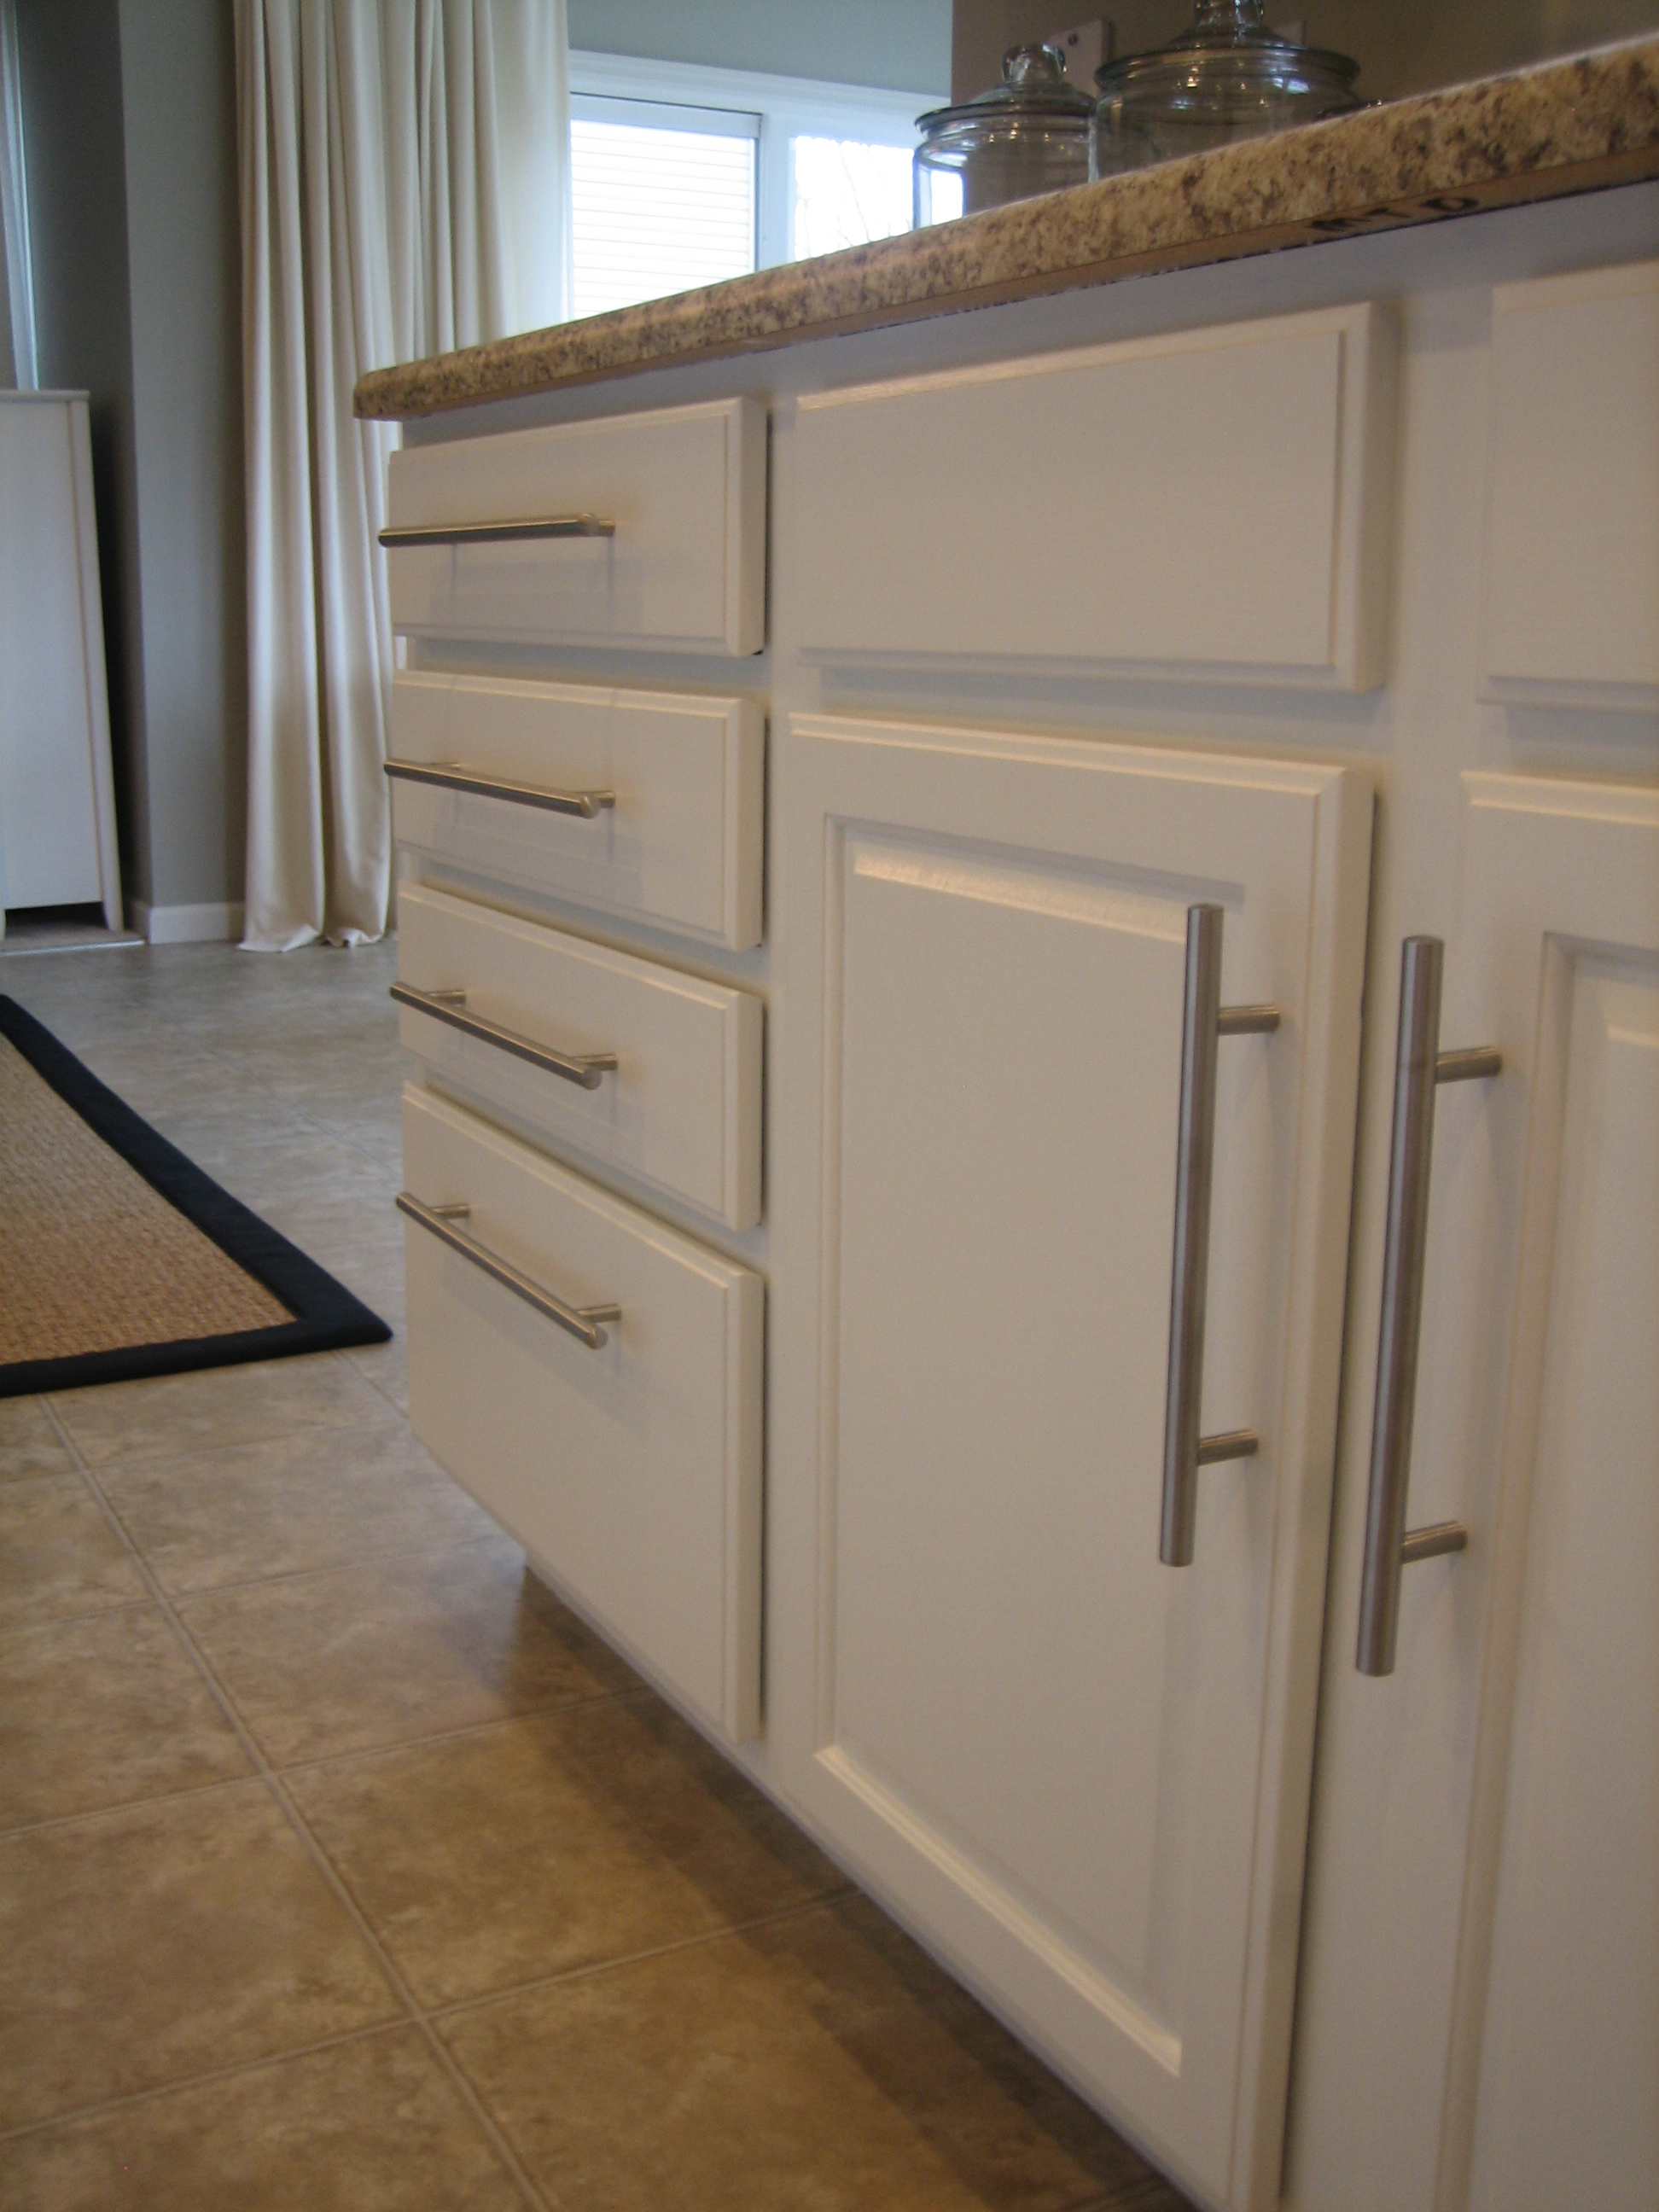 we painted the kitchen cabinets white kitchen cabinet hardware hinges HOUSE TWEAKING